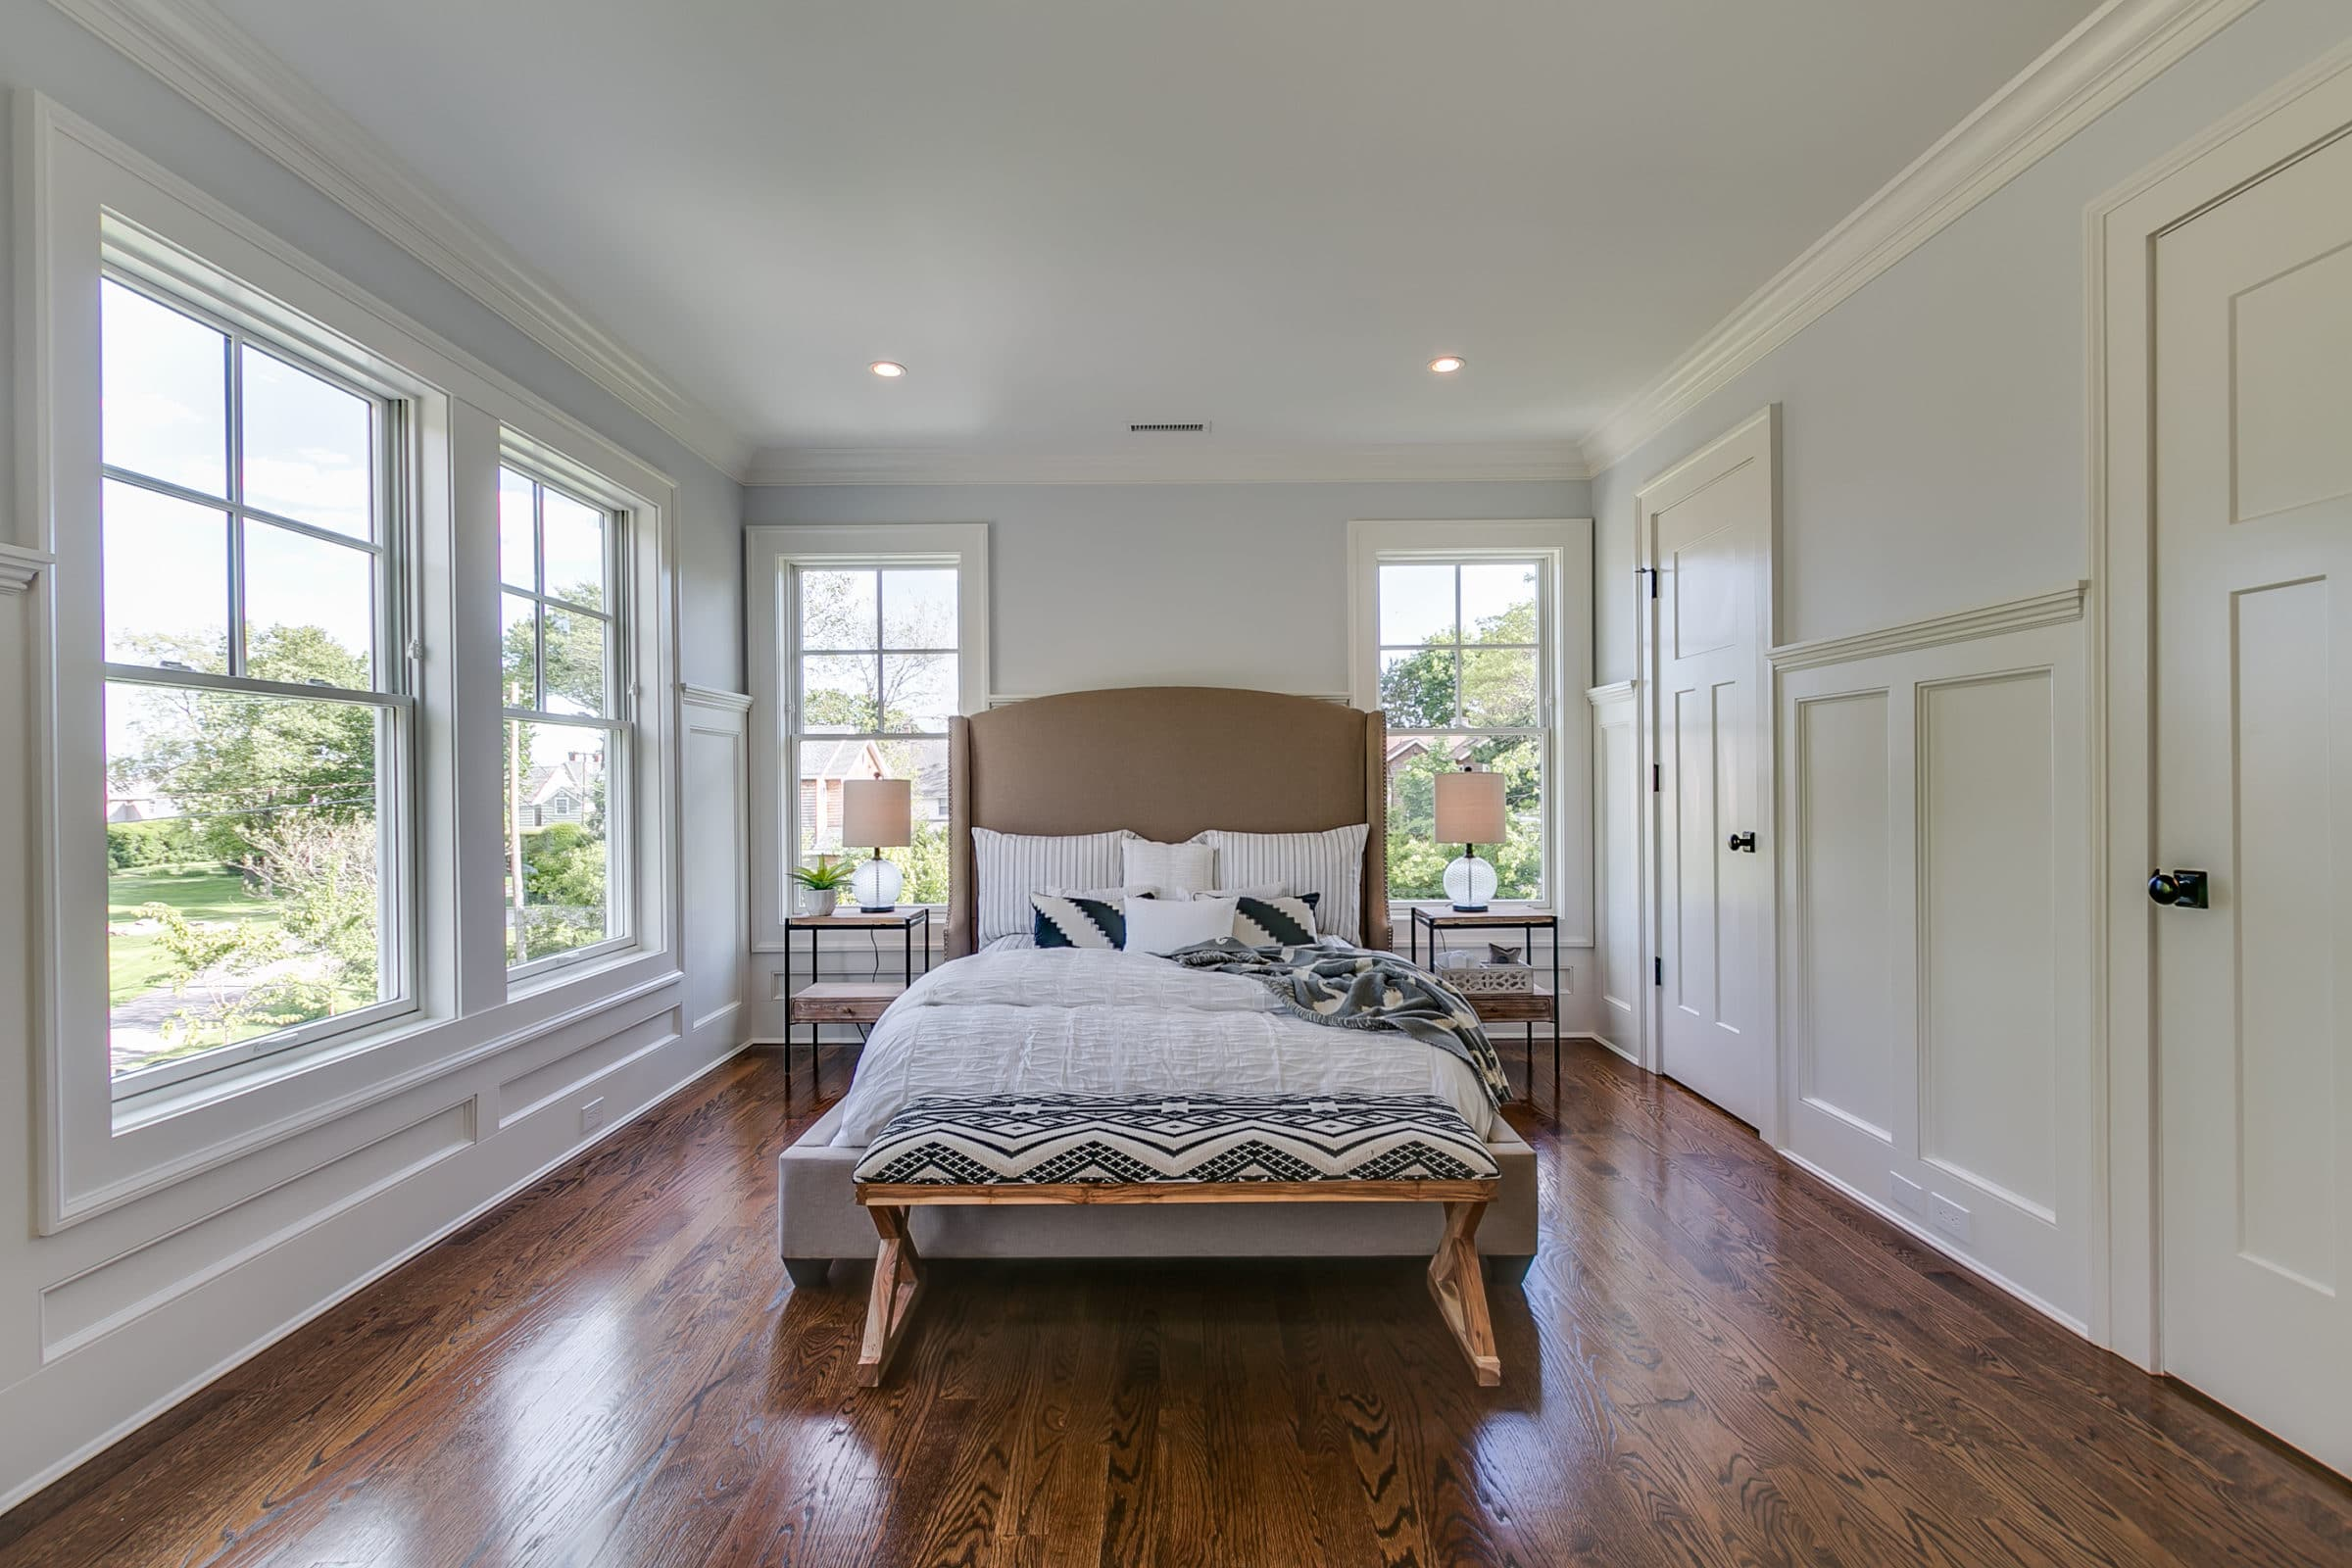 Master bedroom light blue walls and white wainscotting trim